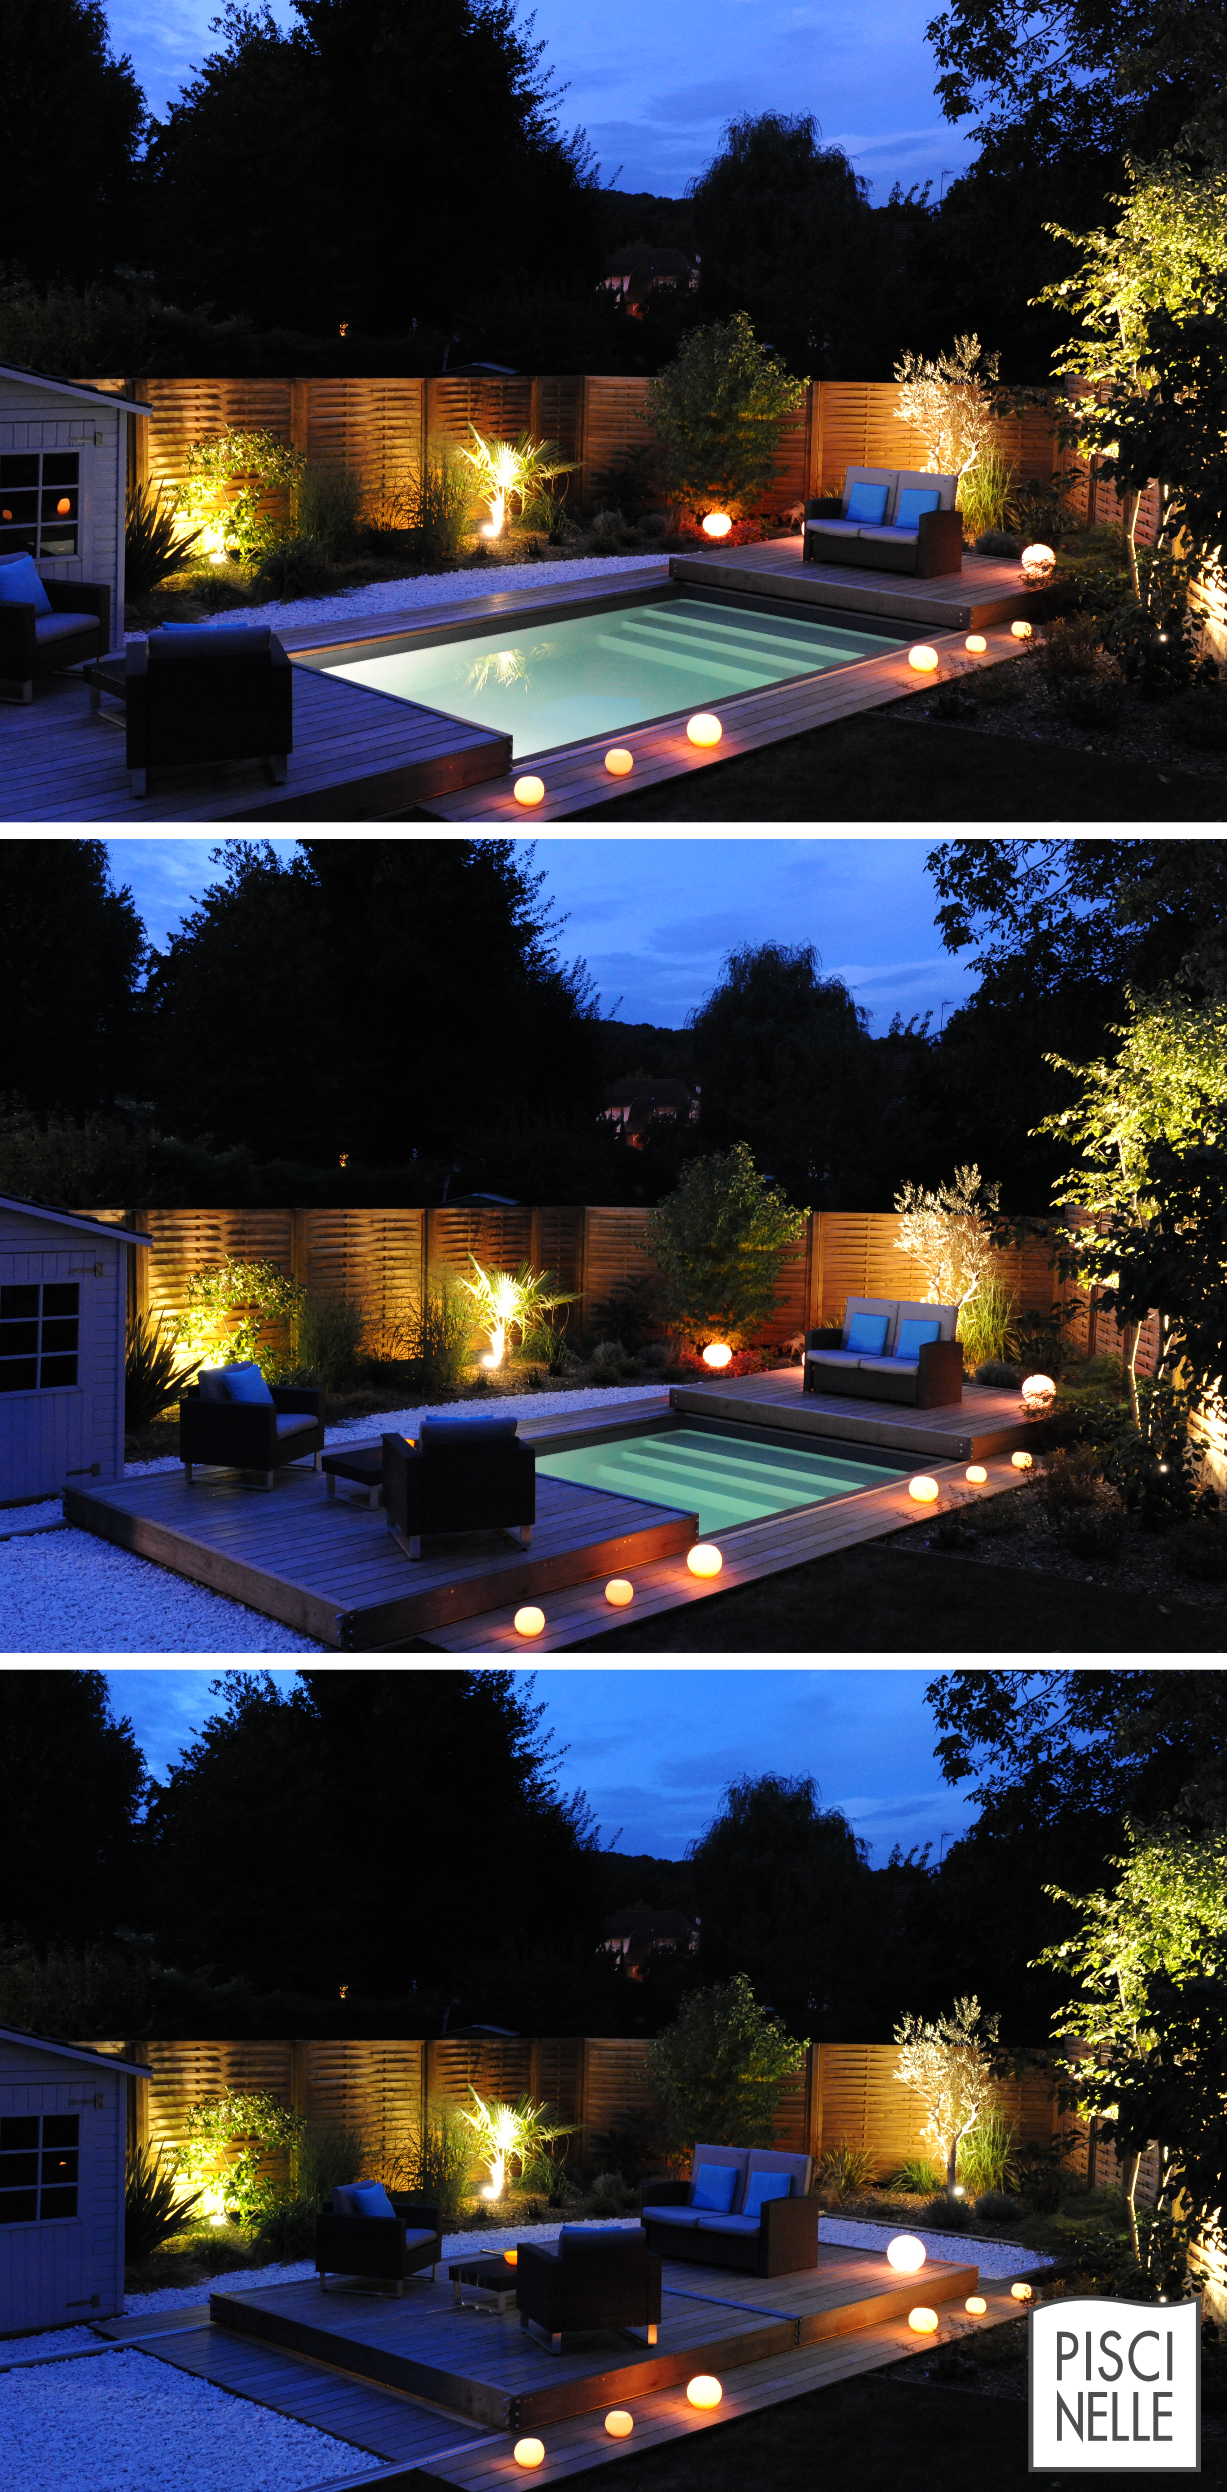 Eclairage Terrasse Bois Piscine amazing awarding winning pool designs that will blow you